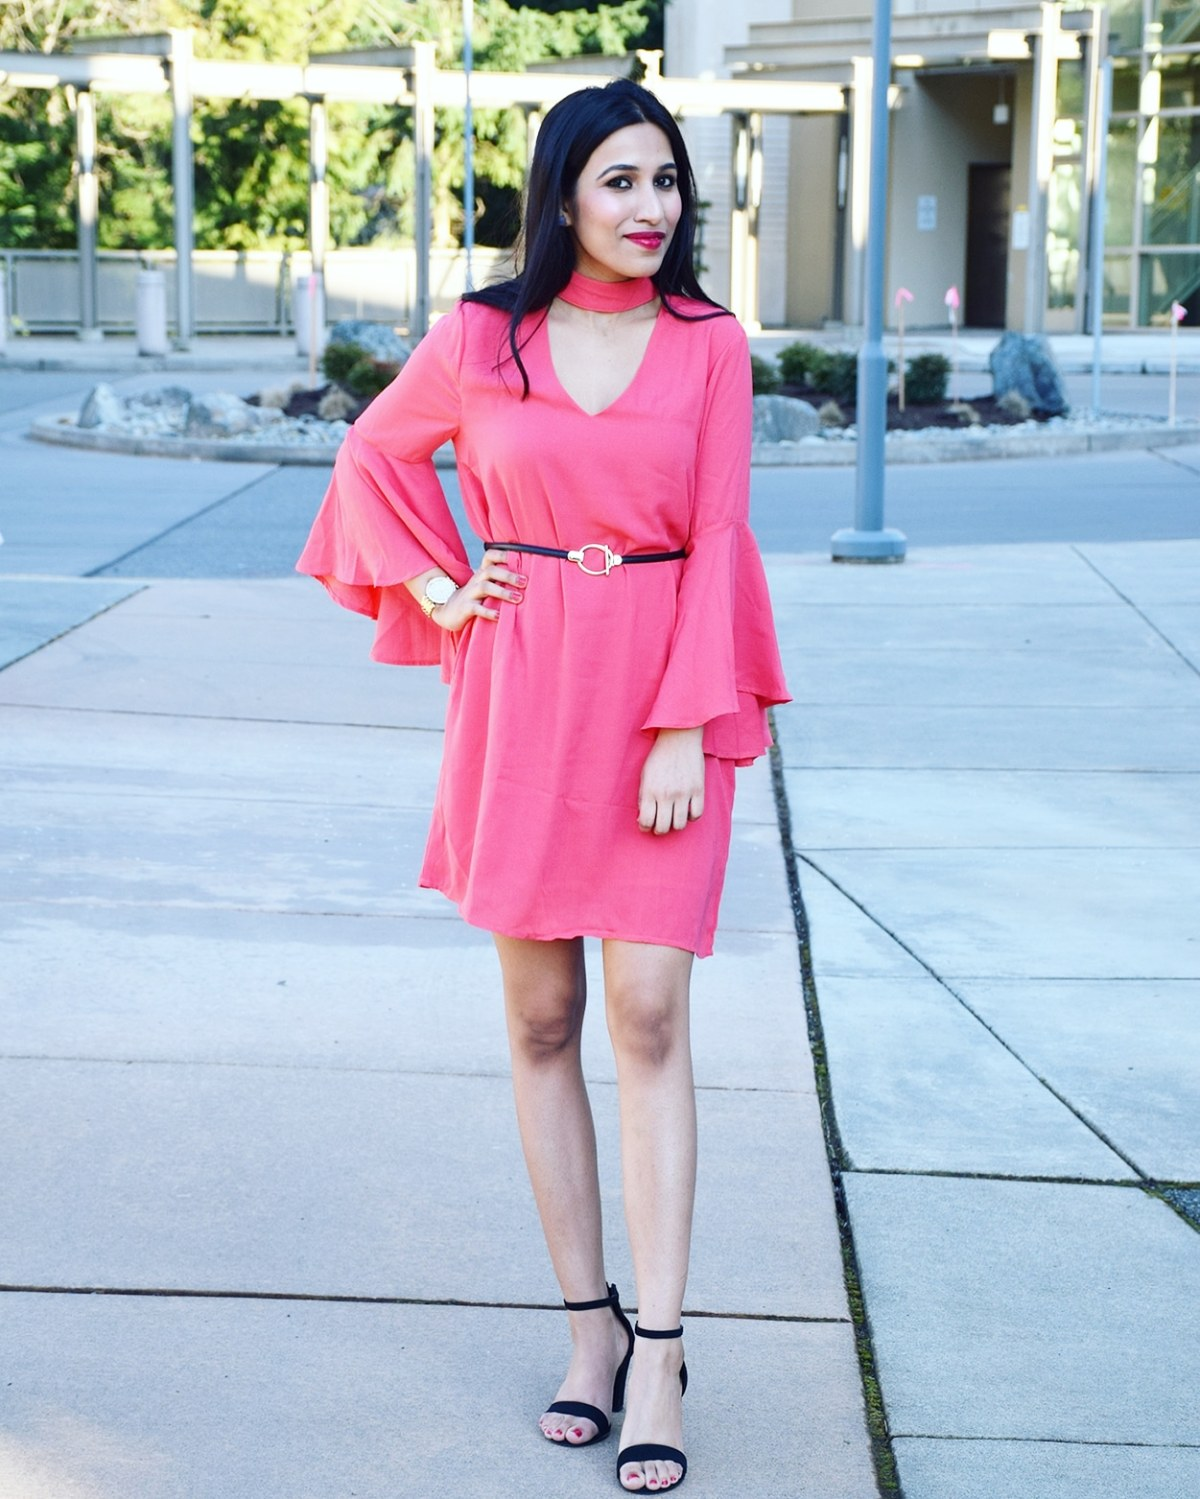 https://www.pinkblushmaternity.com/p-47024-coral-solid-mock-neck-ruffle-sleeve-dress.aspx?DepartmentID=2